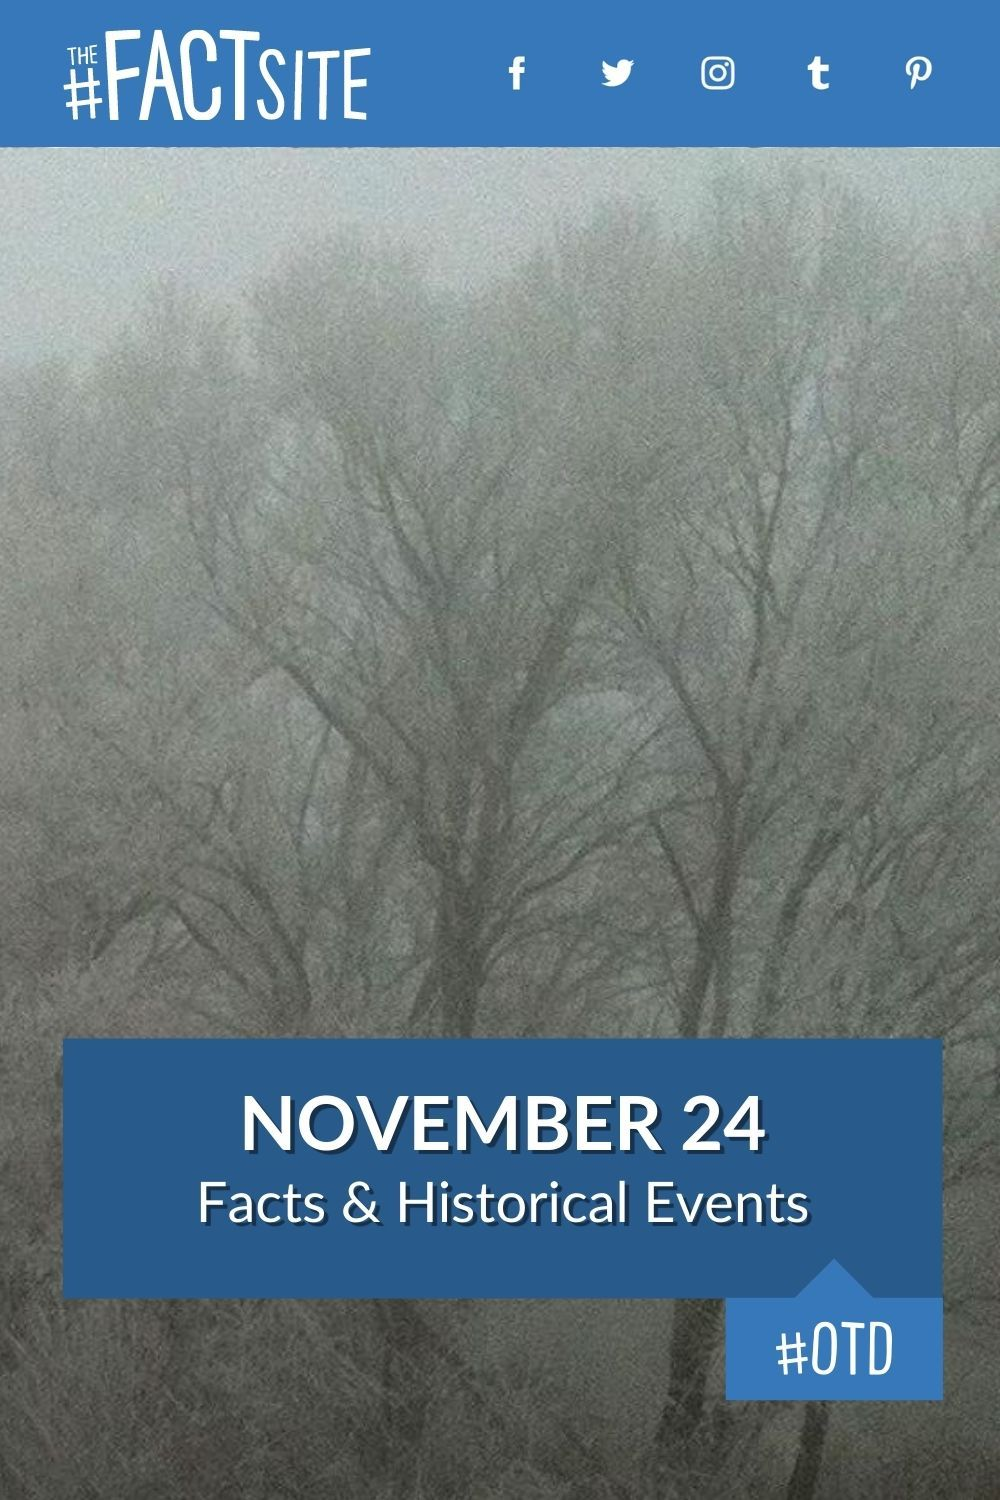 Facts & Historic Events That Happened on November 24